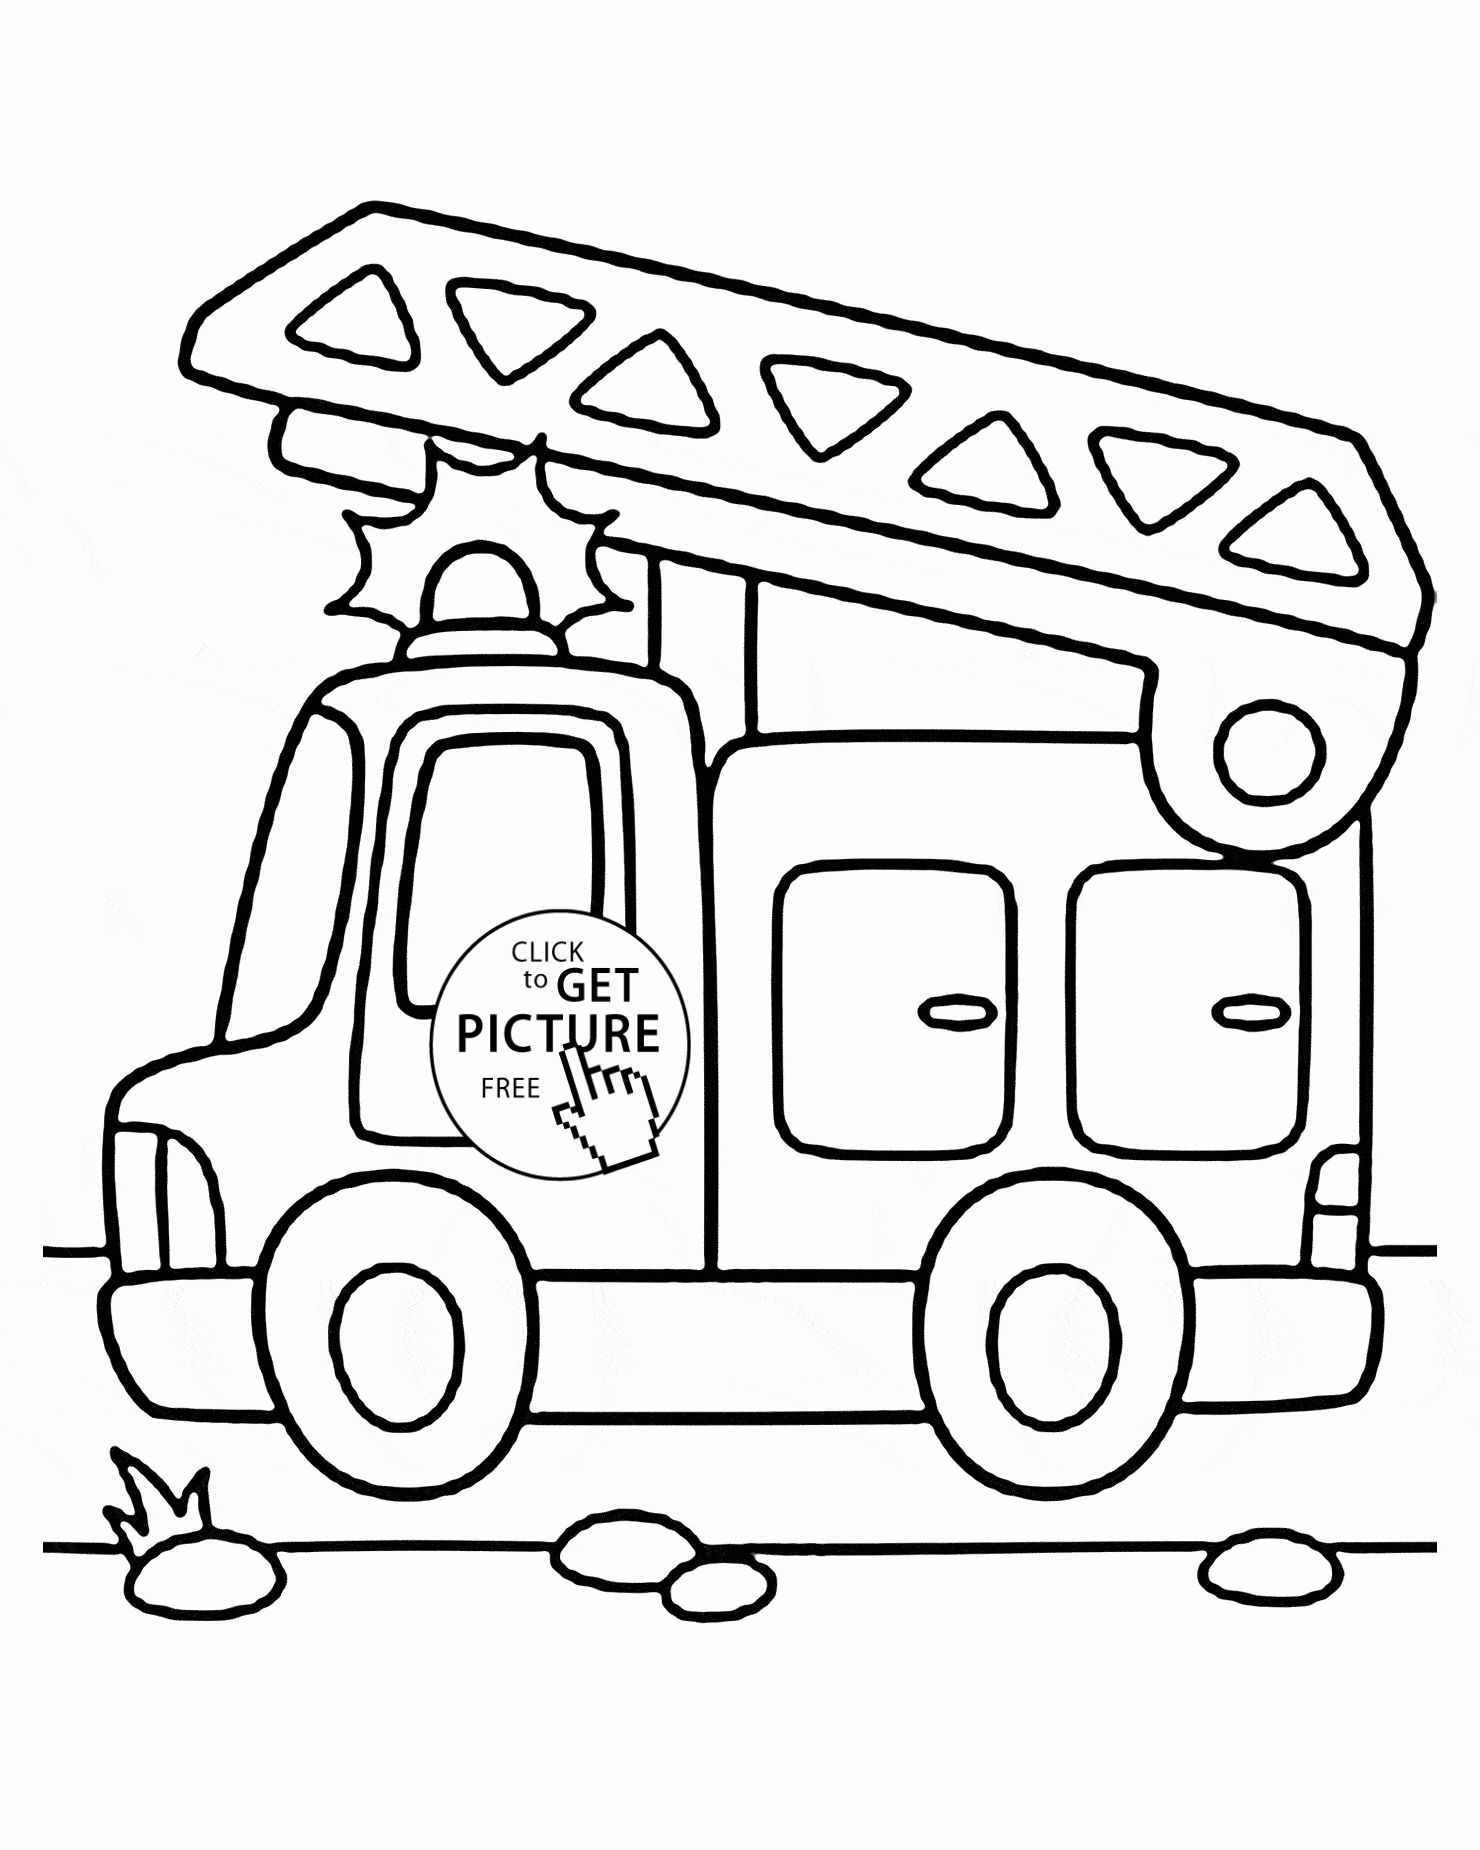 Fire Truck Coloring Page Luxury 52 Firetruck Coloring Pages Printable Fire Truck Colo In 2020 Truck Coloring Pages Firetruck Coloring Page Monster Truck Coloring Pages